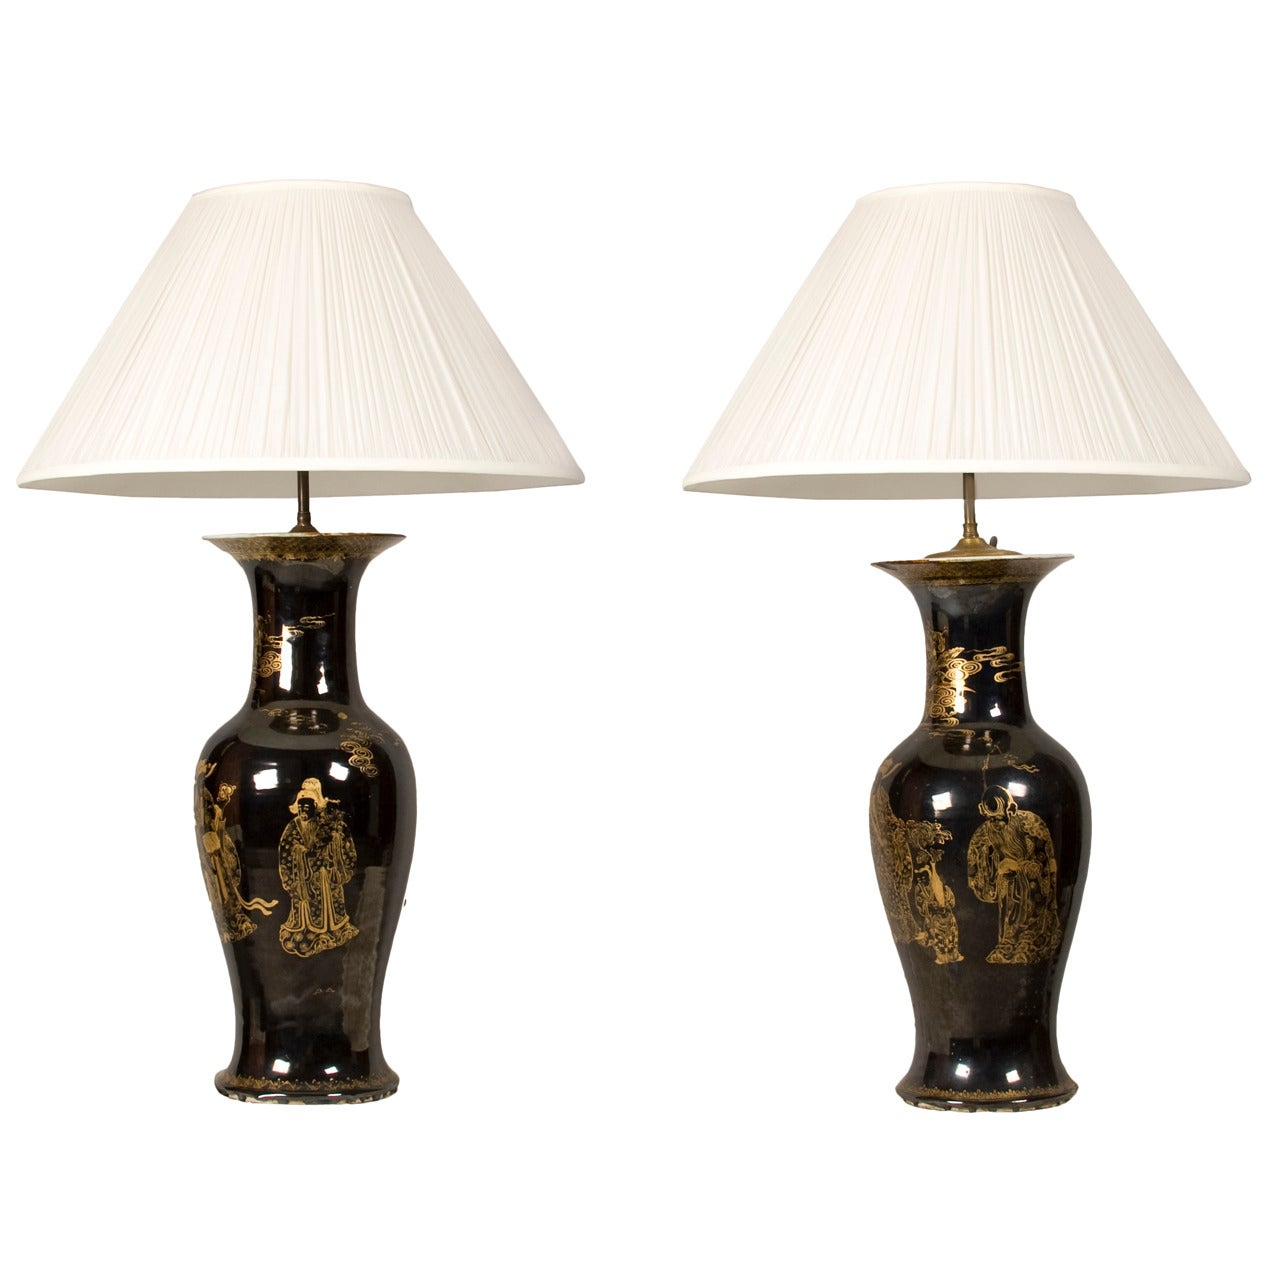 Fine pair of monumental mirror black baluster vases, mounted as Lamps